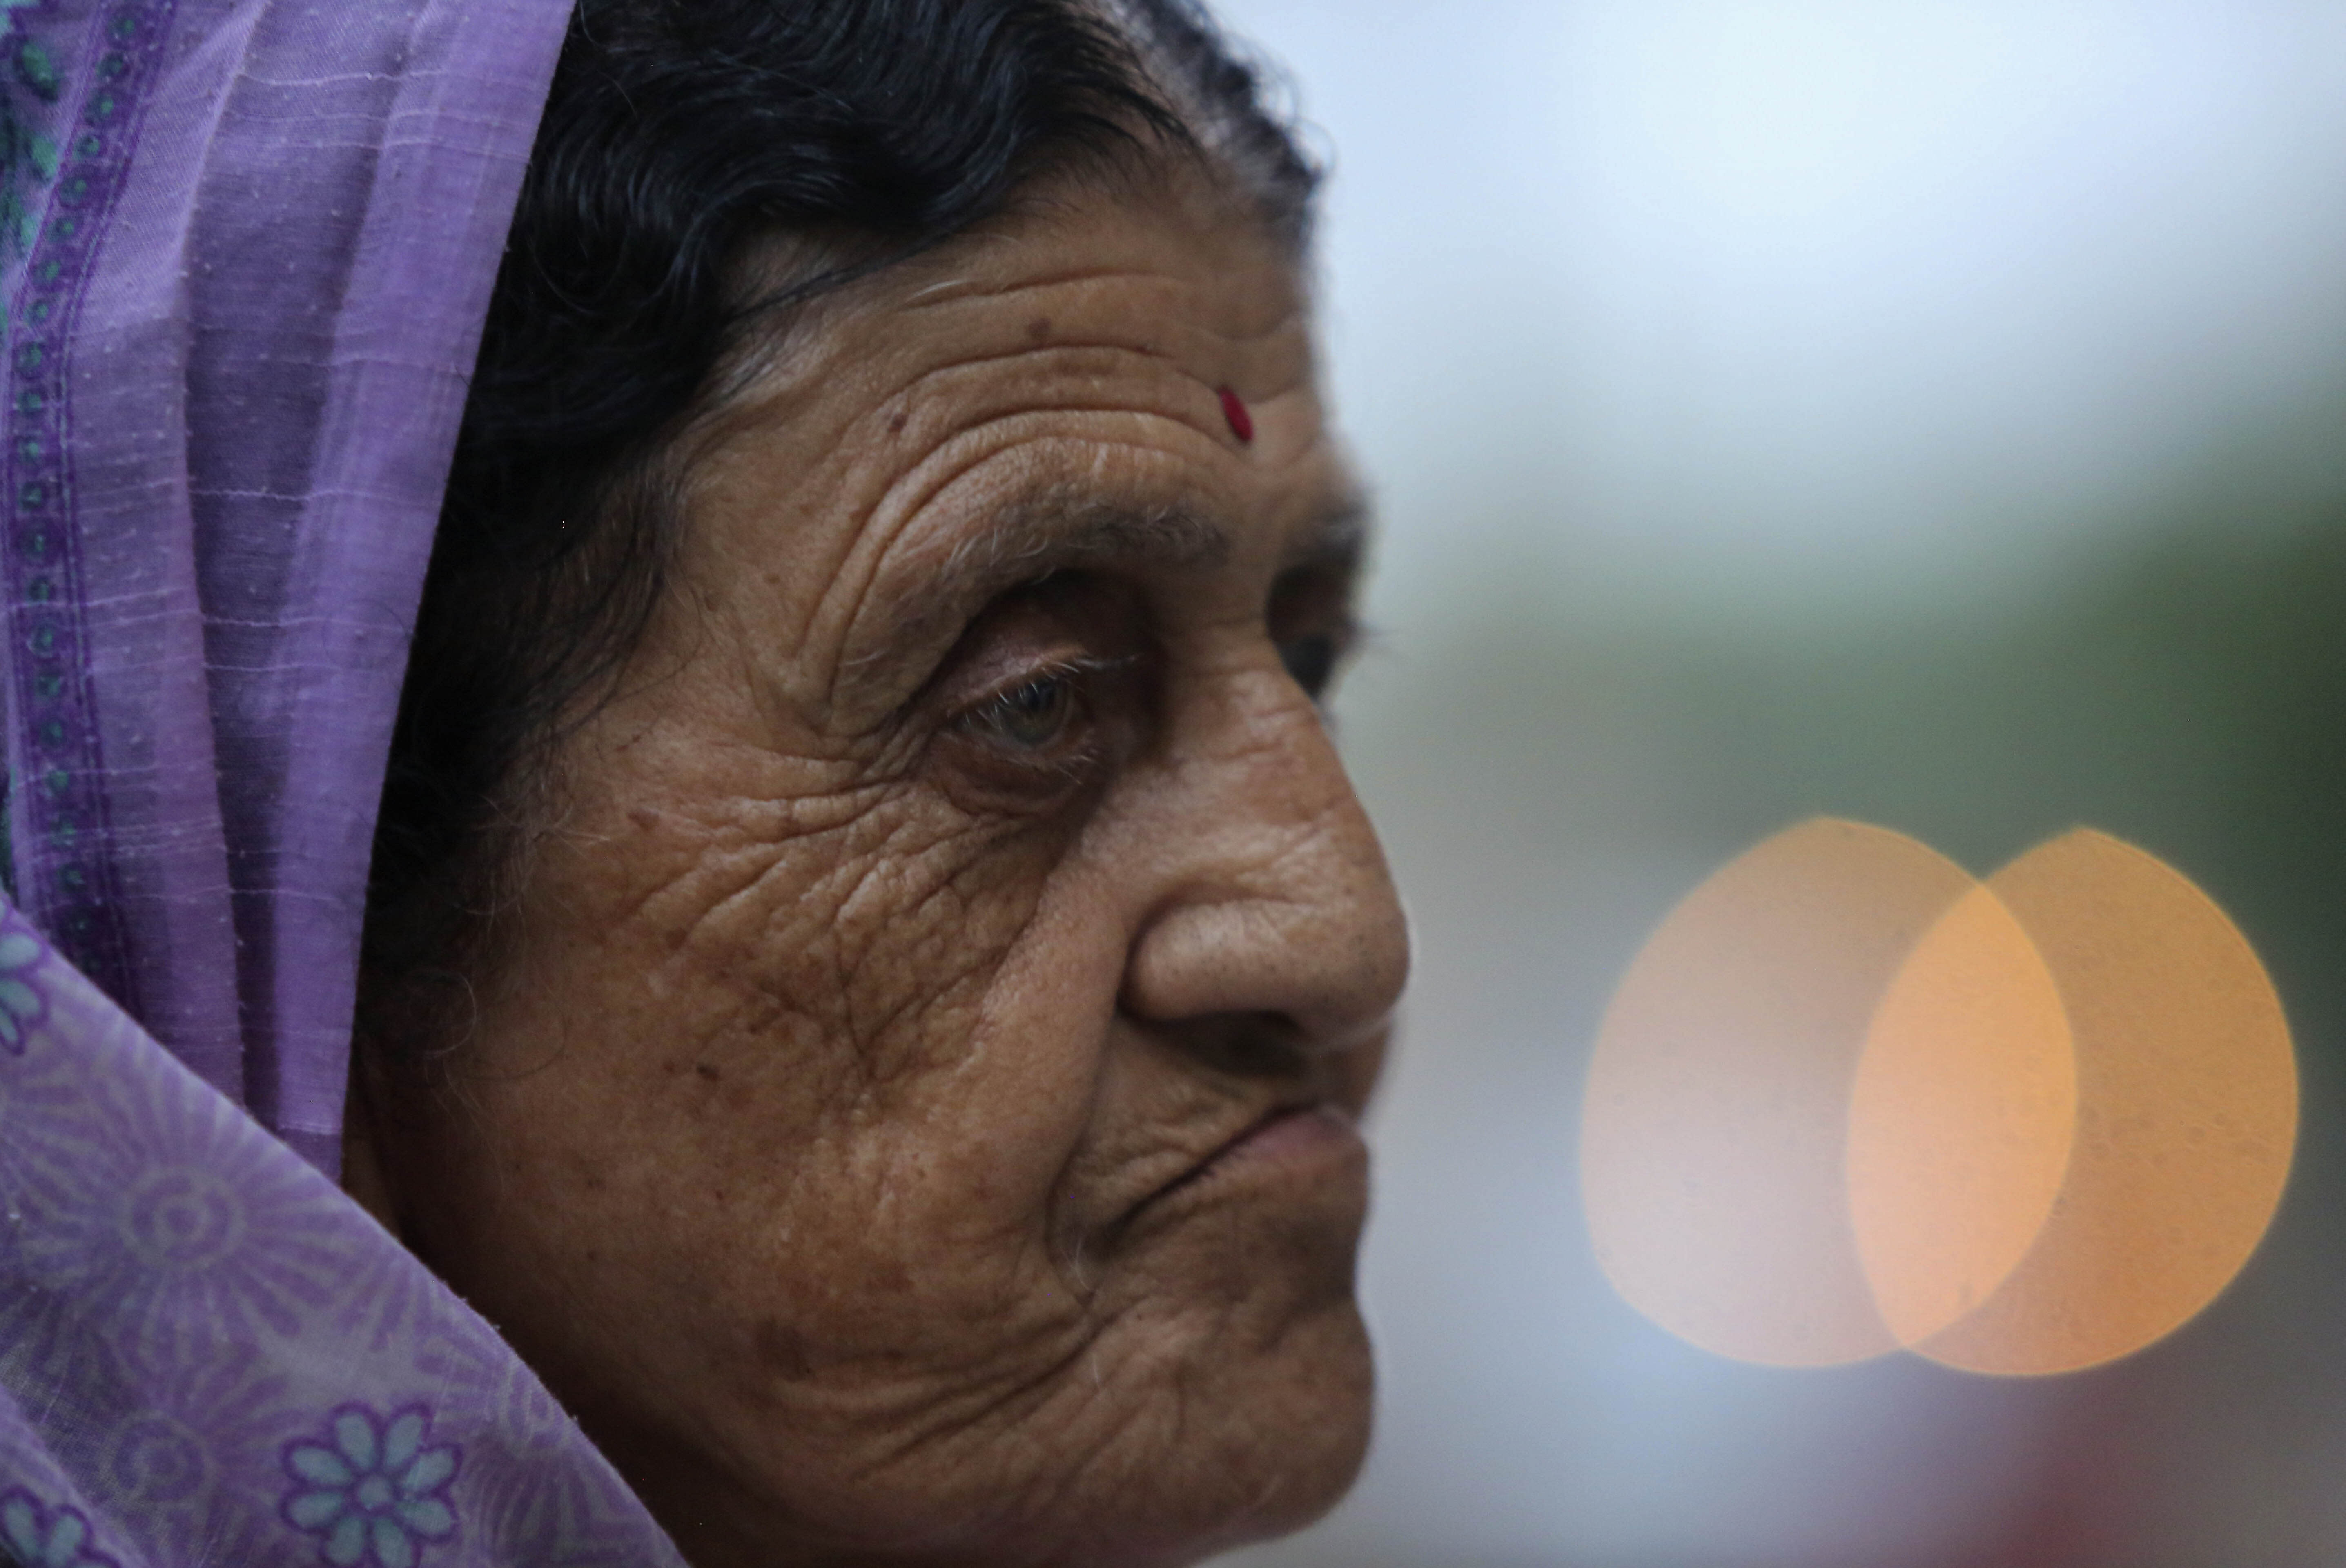 In this Aug. 29, 2019, photo, Kashmiri Hindu woman Arun Ditti, walks inside her residence at the Muthi migrant camp in Jammu, India. Tens of thousands of Kashmiri Hindus fled the restive region nearly 30 years ago, and the ghost of insurgency and their mass exodus still haunts them. They celebrated after India's Hindu nationalist-led government stripped political autonomy from its part of Muslim-majority Kashmir on Aug. 5. Kashmiri Hindus view it as a step toward justice and possible return to their homeland. But many are still wary of returning. (AP Photo/Channi Anand)